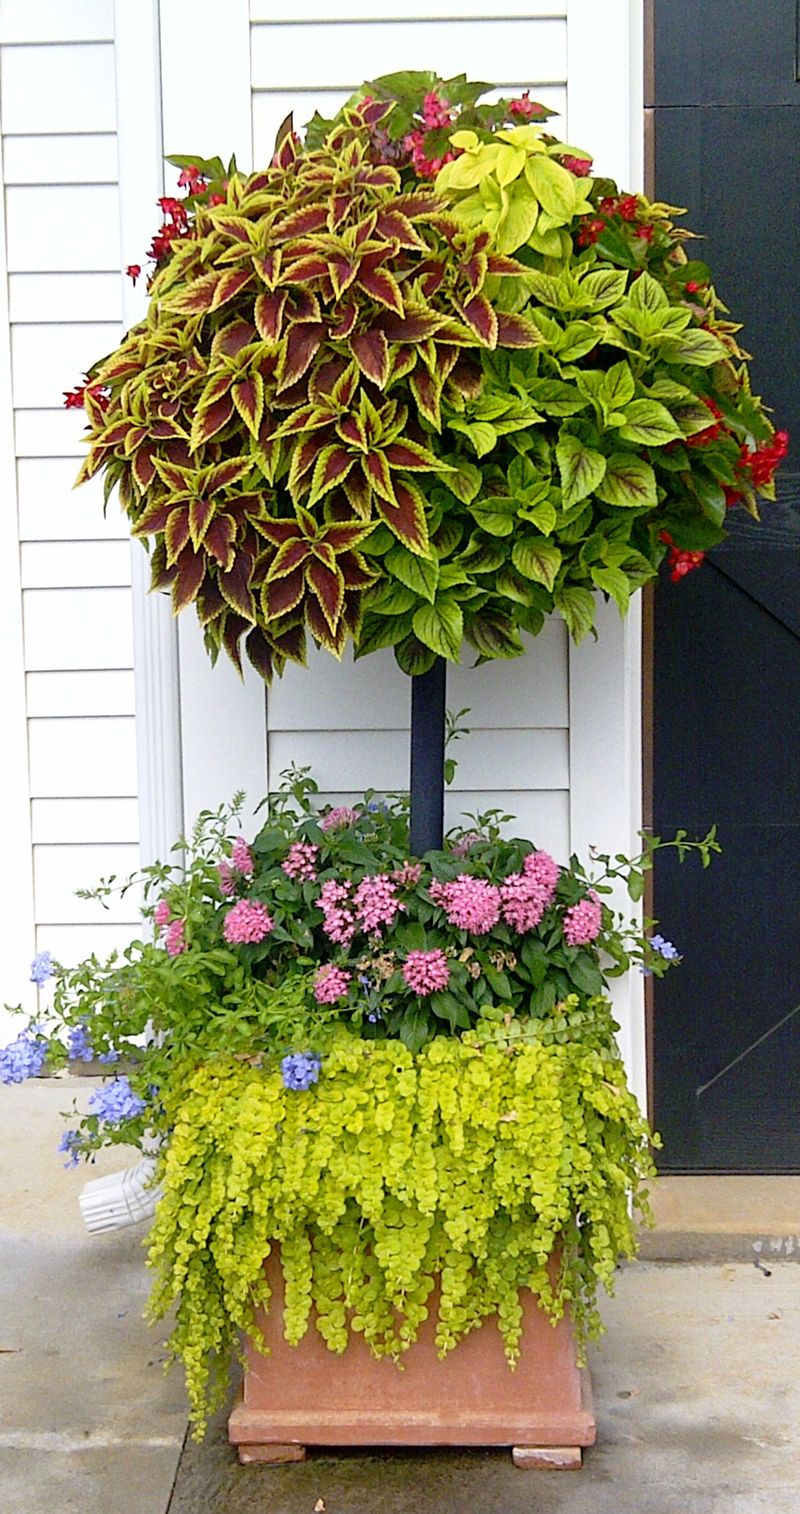 Urban gardening planters - Find This Pin And More On Urban Gardening And Landscaping